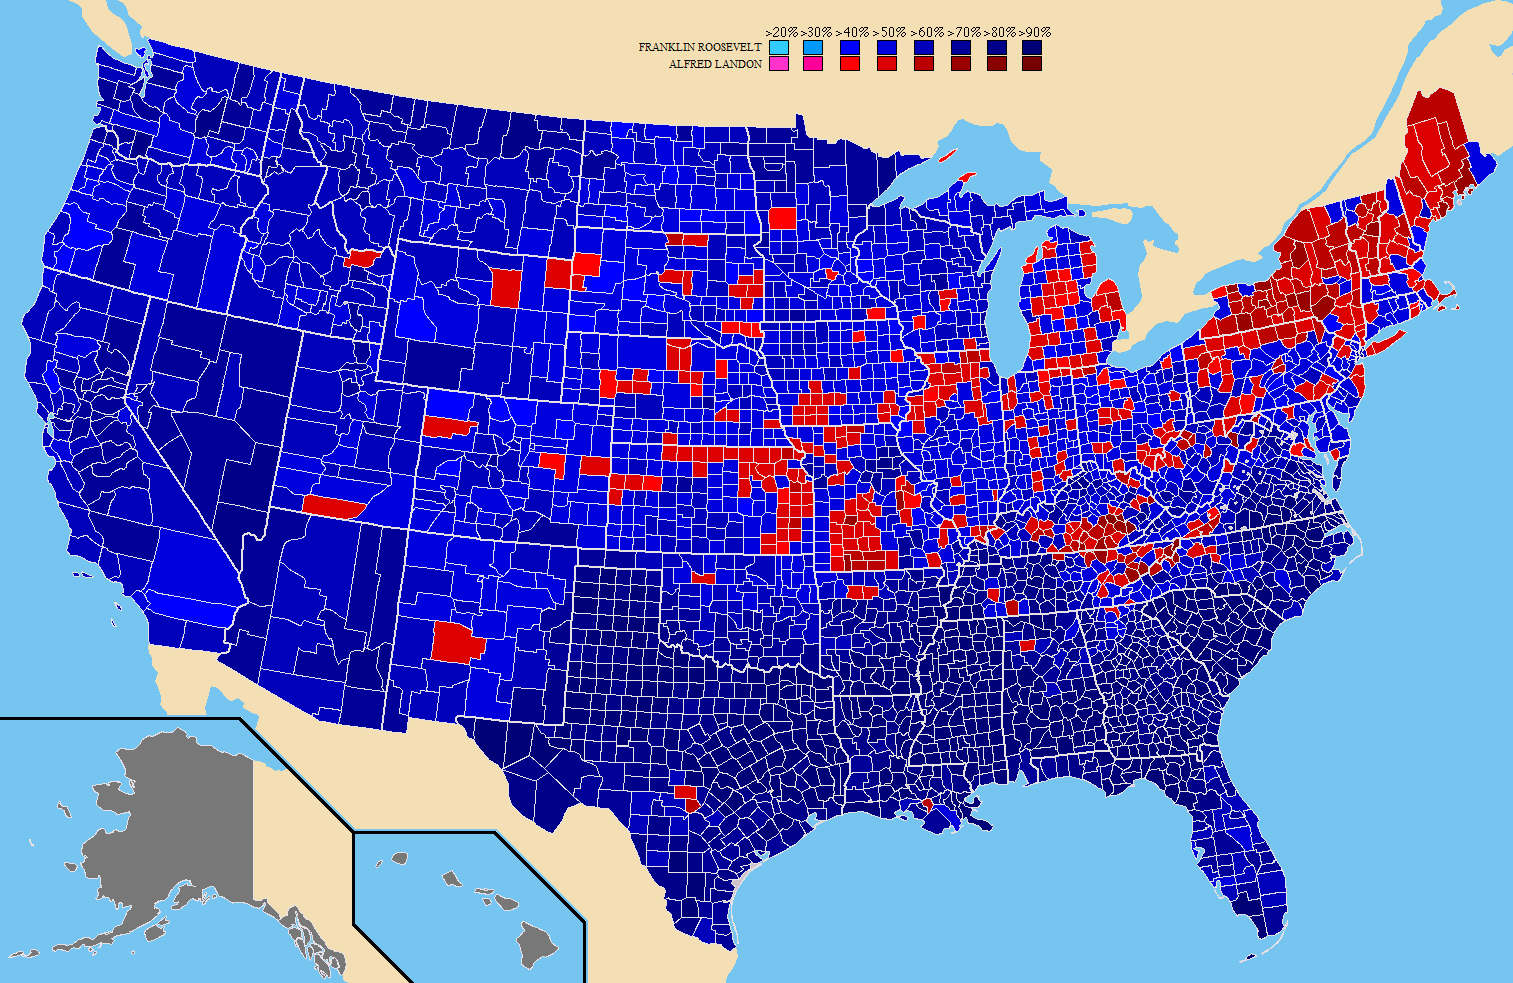 US Election Results By County In MAPS Pinterest - Map of county votes for us election